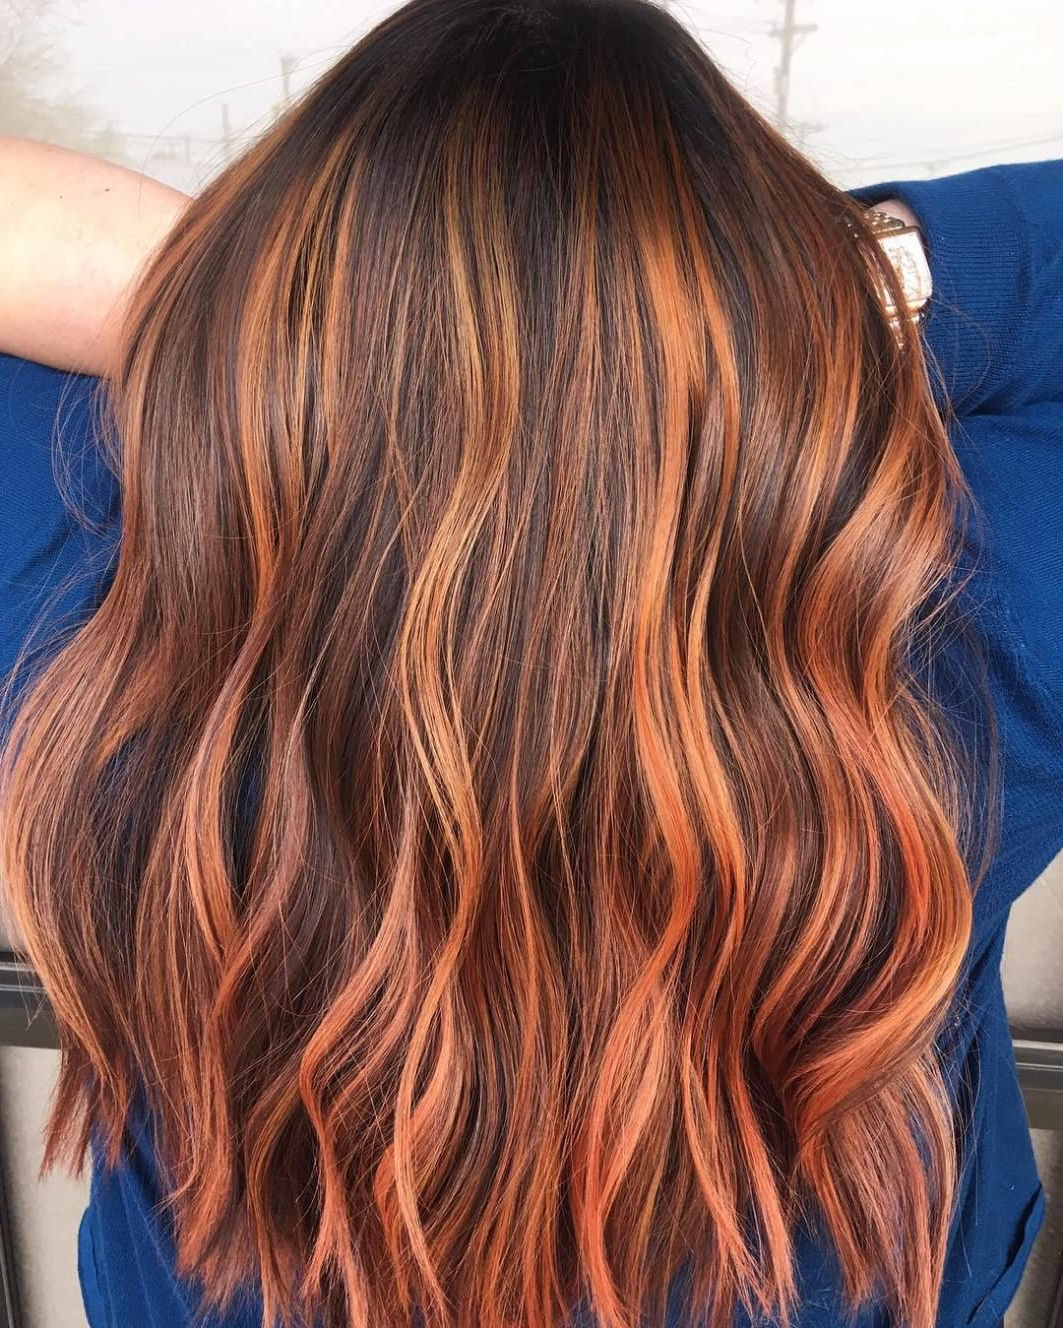 Well Liked Natural Curls Hairstyles With Caramel Highlights Regarding 50 Beautiful Hairstyles With Caramel Highlights – Hair (View 4 of 20)